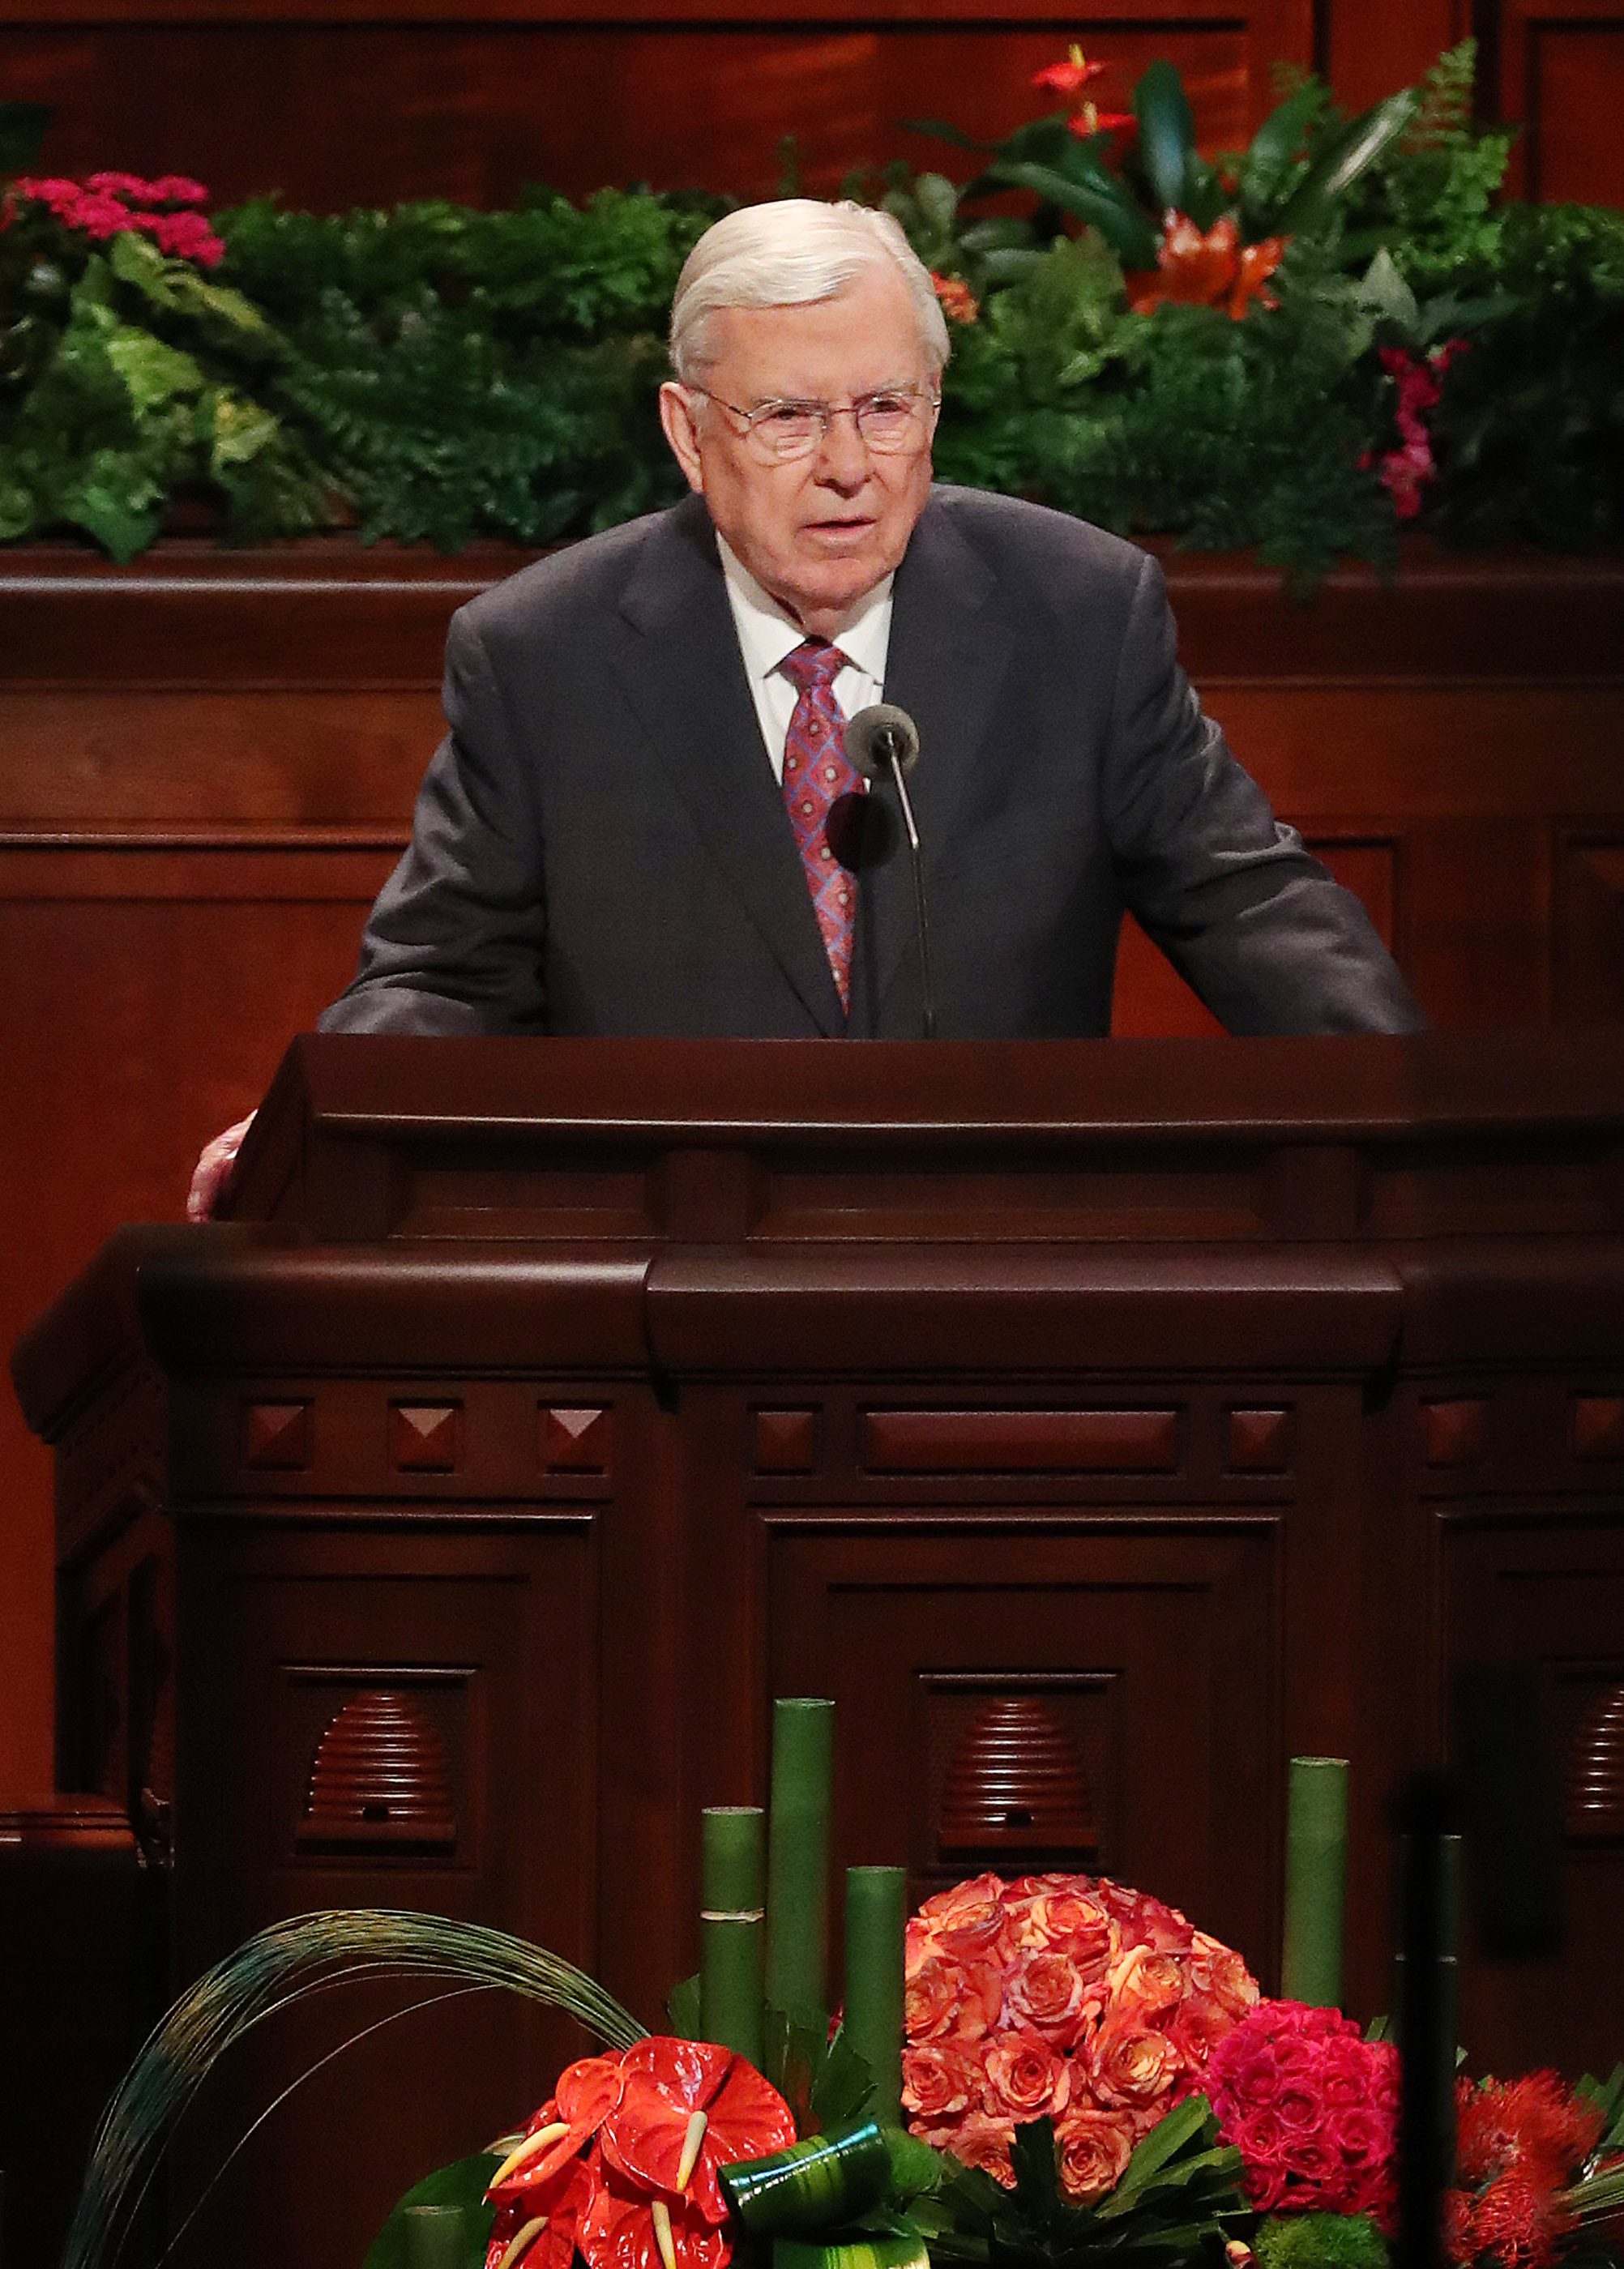 President M. Russell Ballard, acting president of The Church of Jesus Christ of Latter-day Saints' Quorum of the Twelve Apostles, speaks during the 188th Semiannual General Conference of The Church of Jesus Christ of Latter-day Saints in Salt Lake City on Sunday, Oct. 7, 2018.